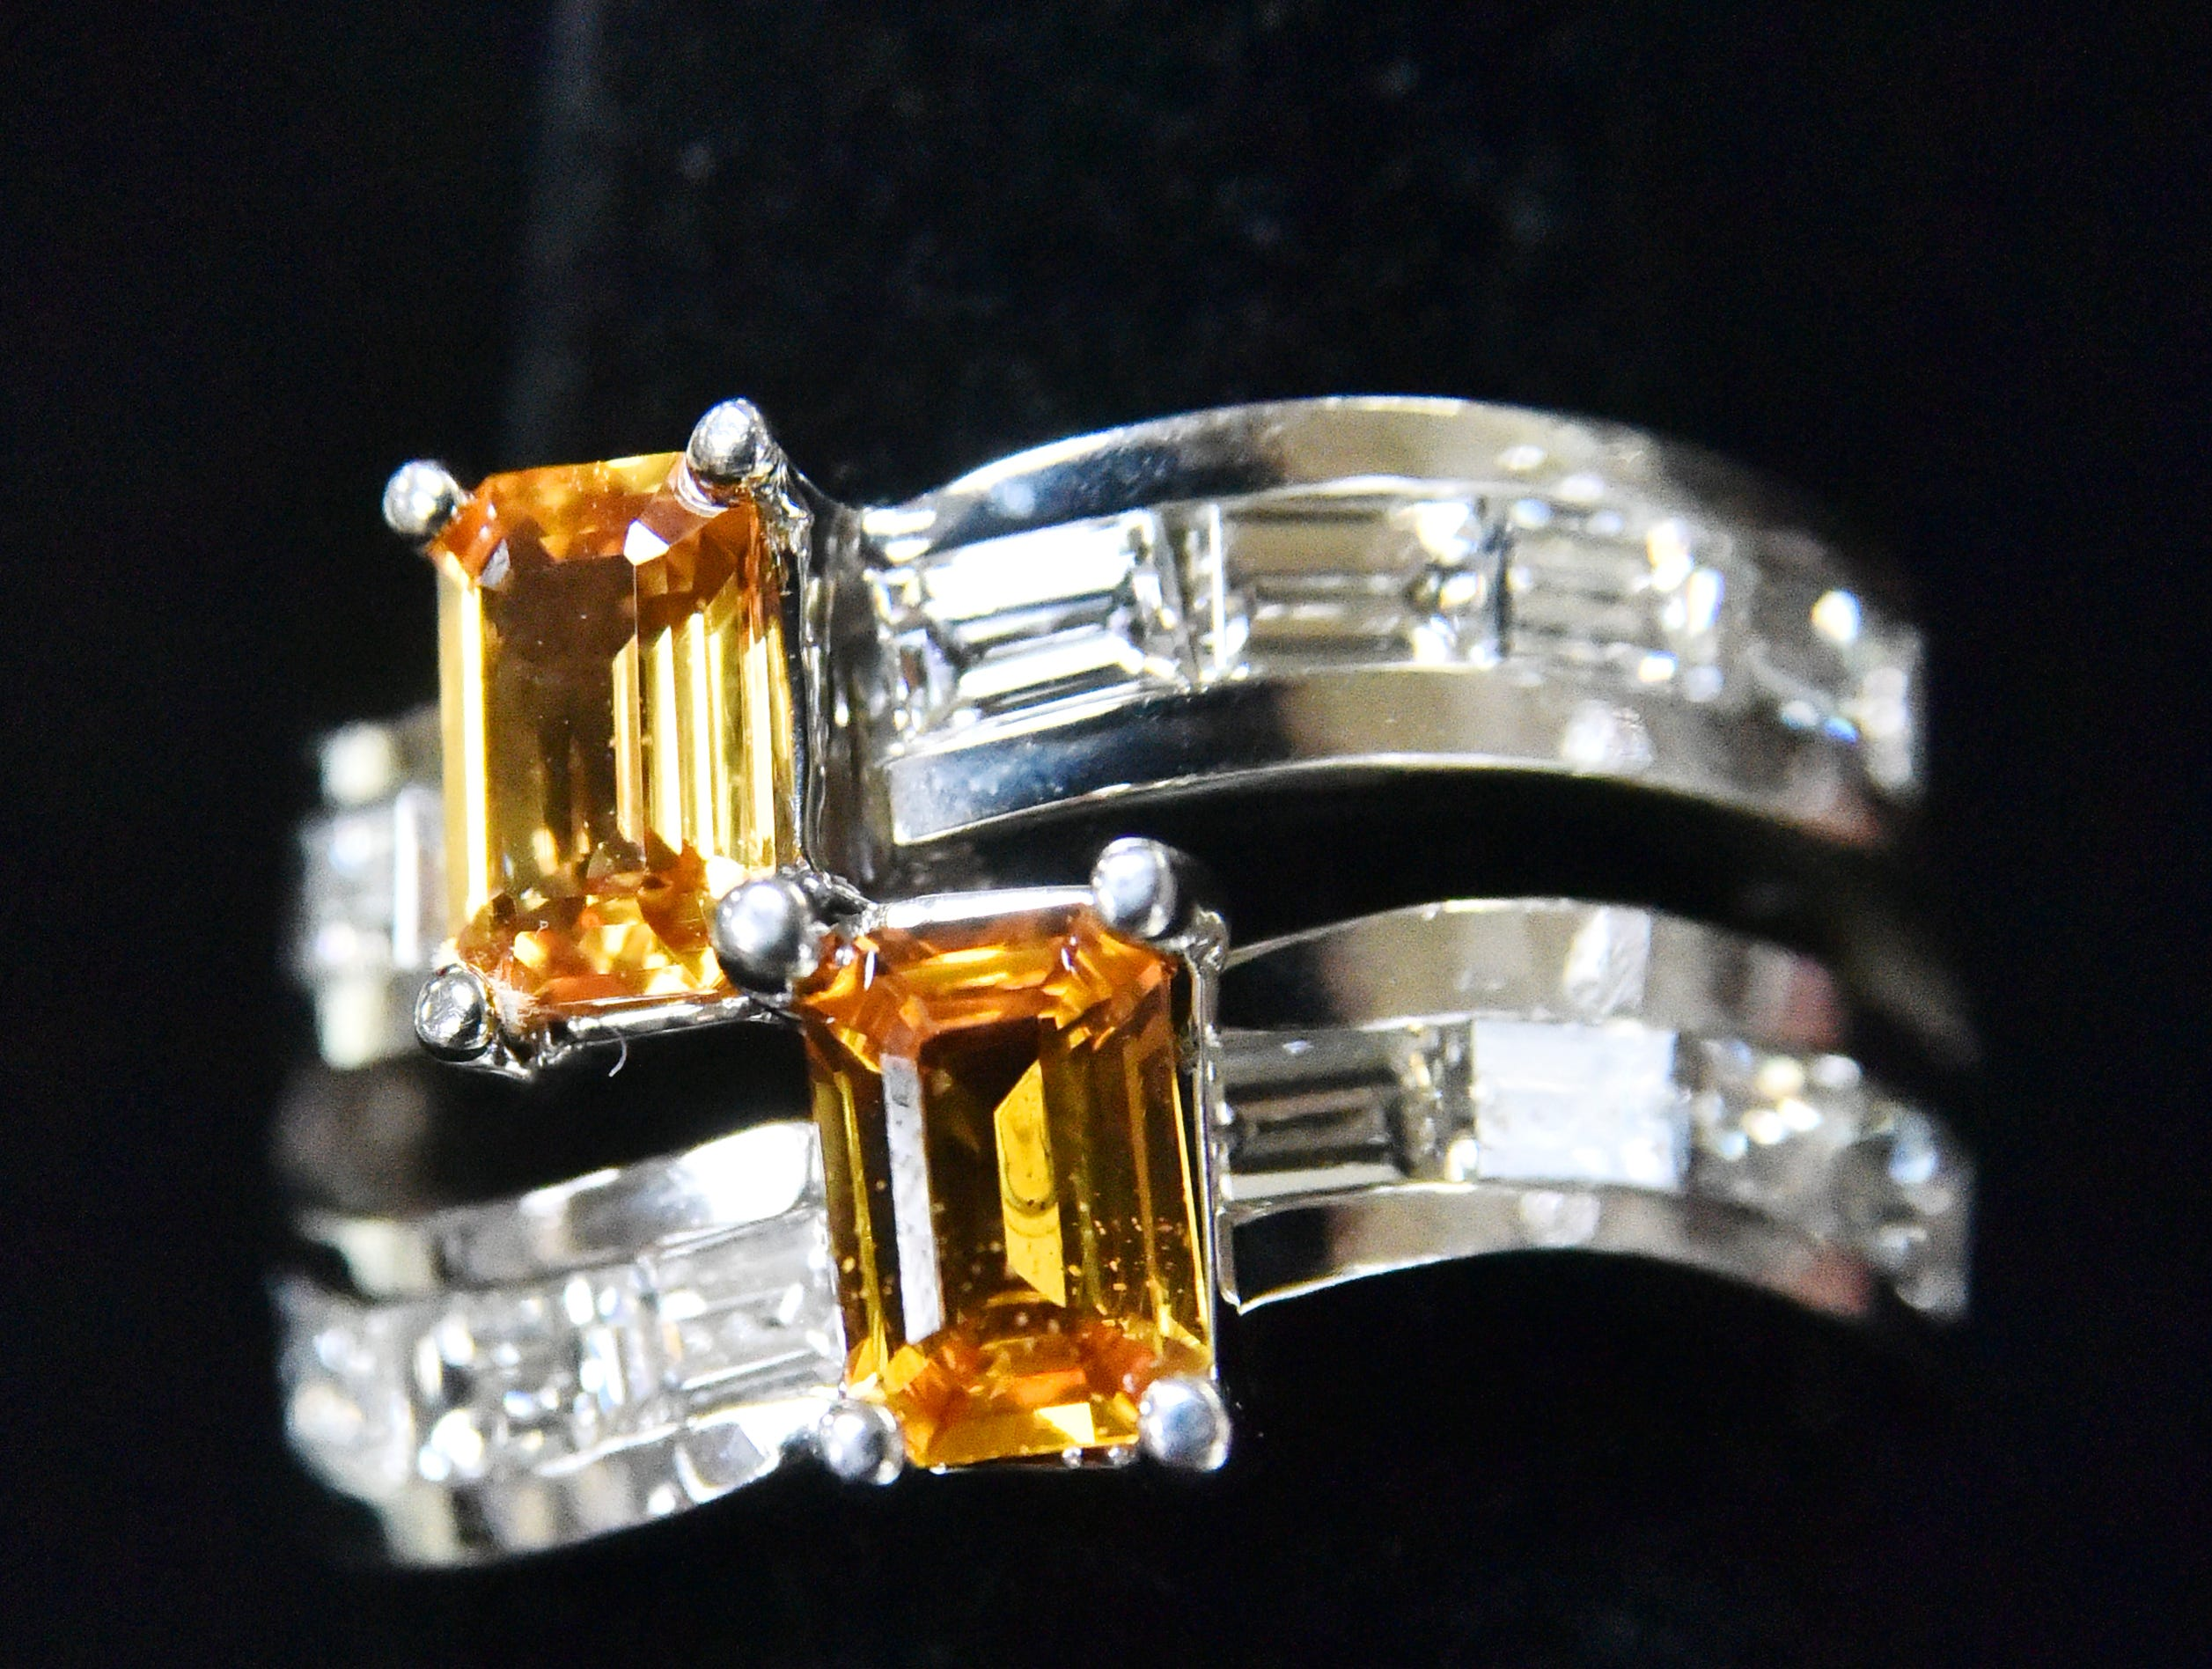 A ring with matching 1K yellow sapphires and 2K in baguette diamonds from Julie's Jewels and Gifts.